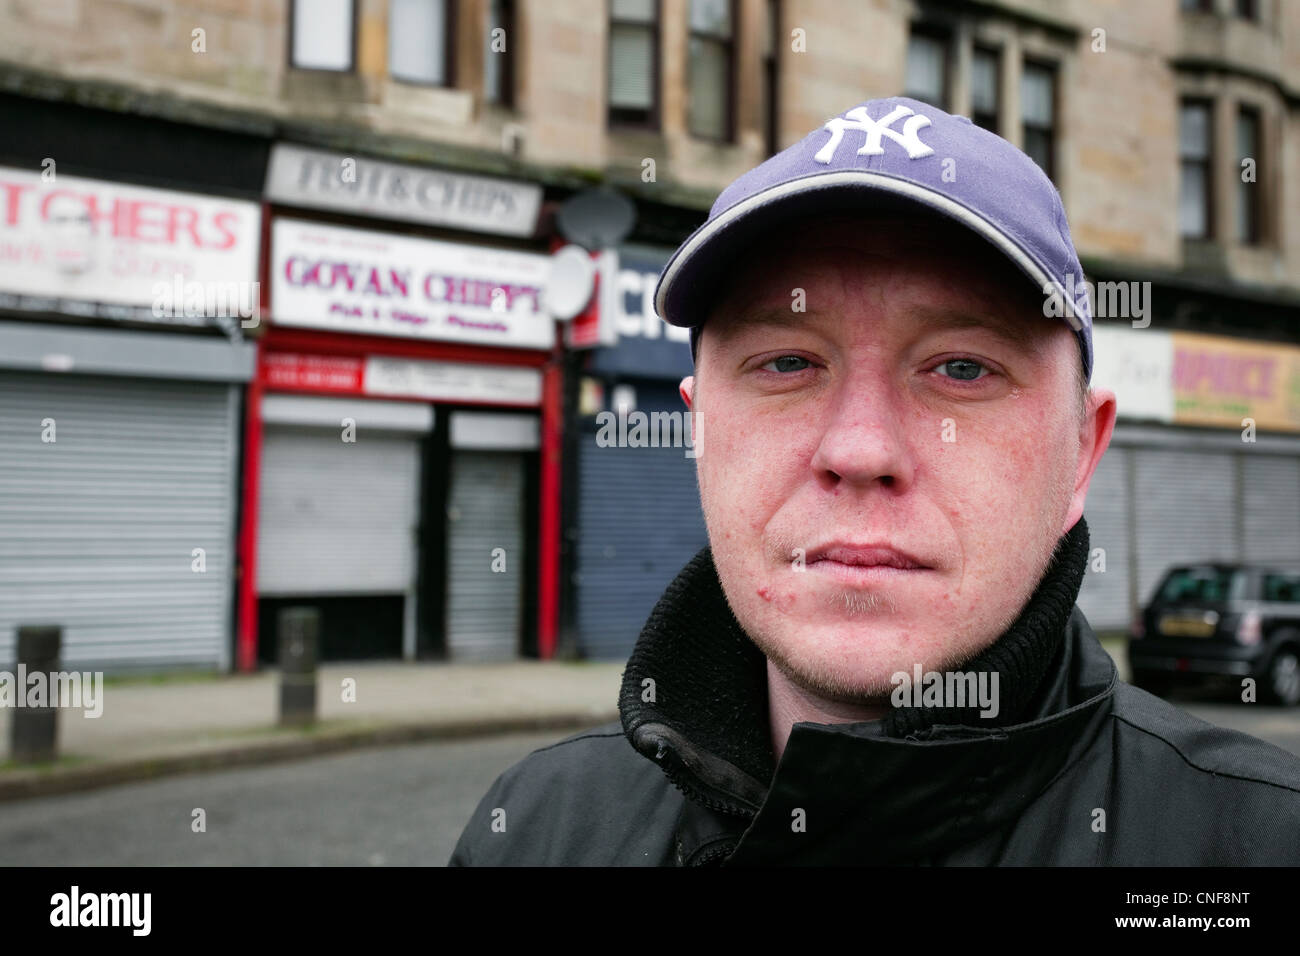 Young unemployed man in Shaw Street, Govan, Glasgow, Scotland - Stock Image